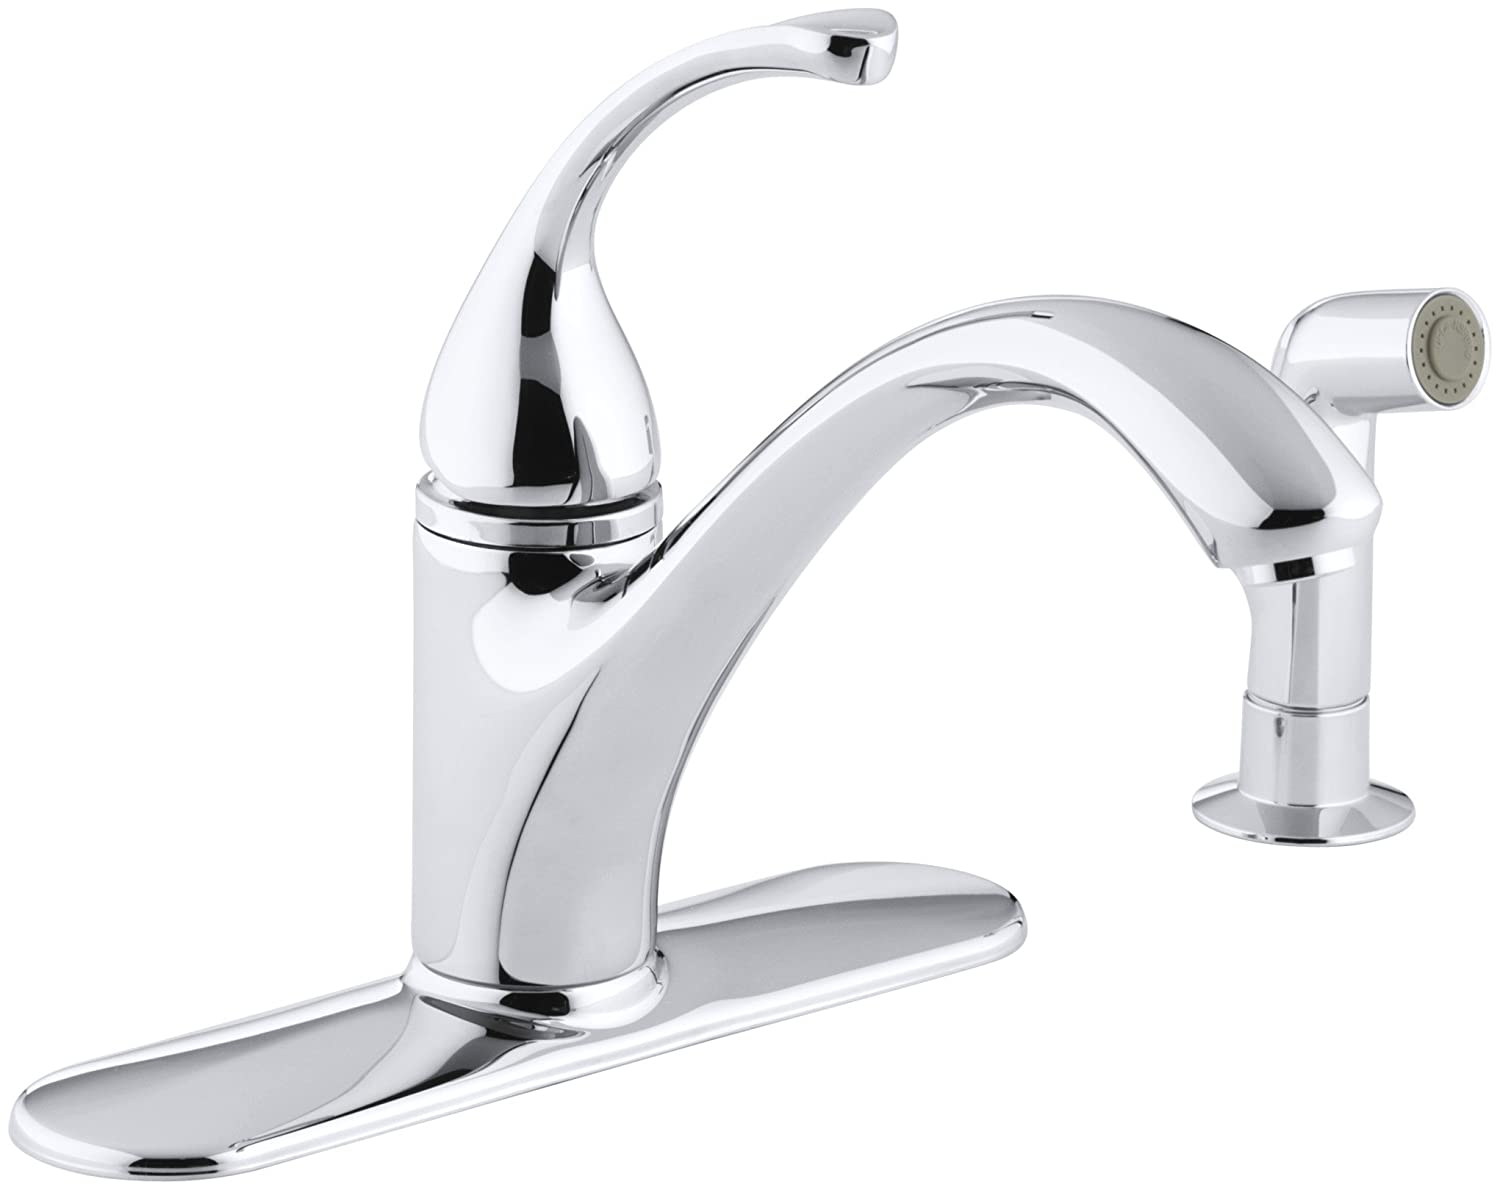 Medium image of kohler k 10412 cp forte single control kitchen sink faucet polished chrome   touch on kitchen sink faucets   amazon com